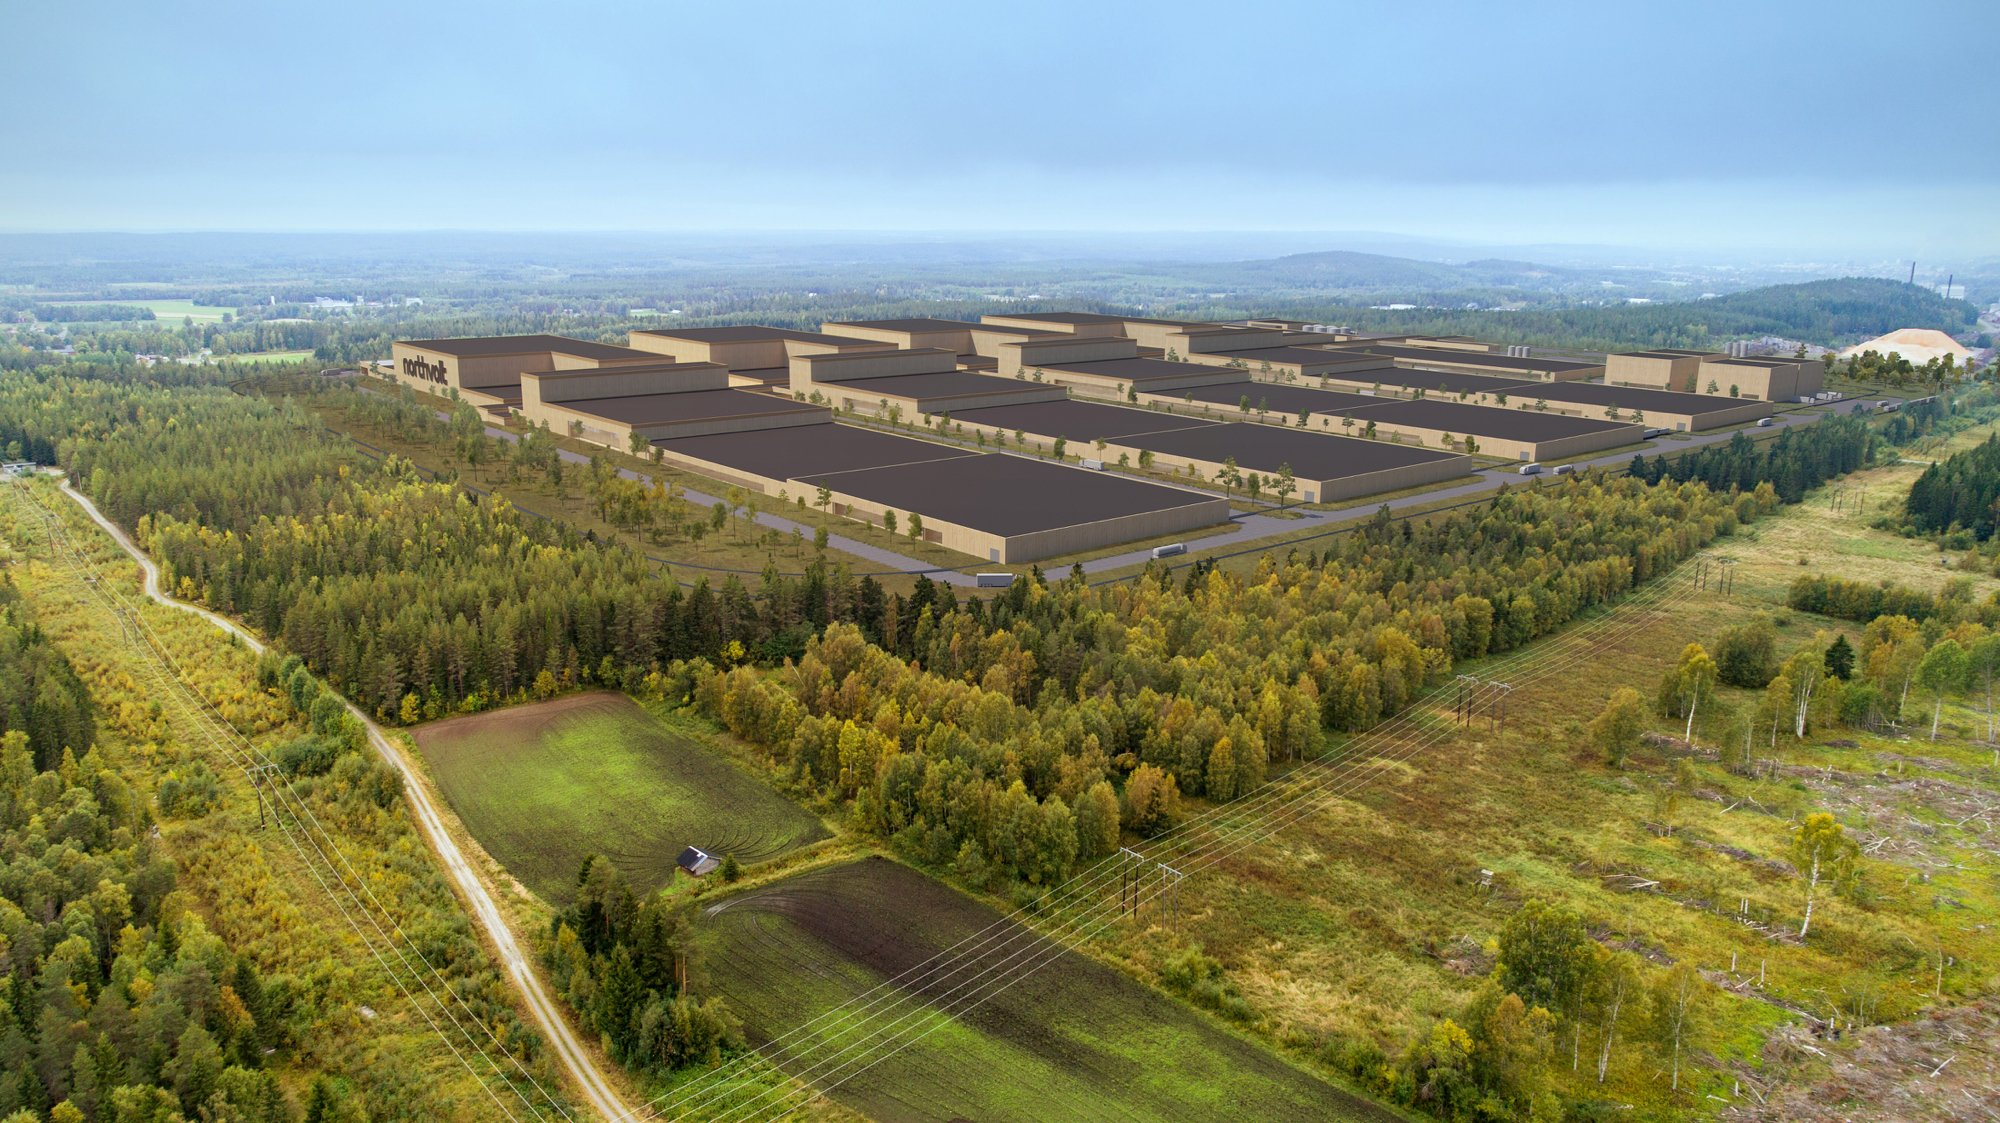 Northern Swedish city is set to get Europe's largest battery factory